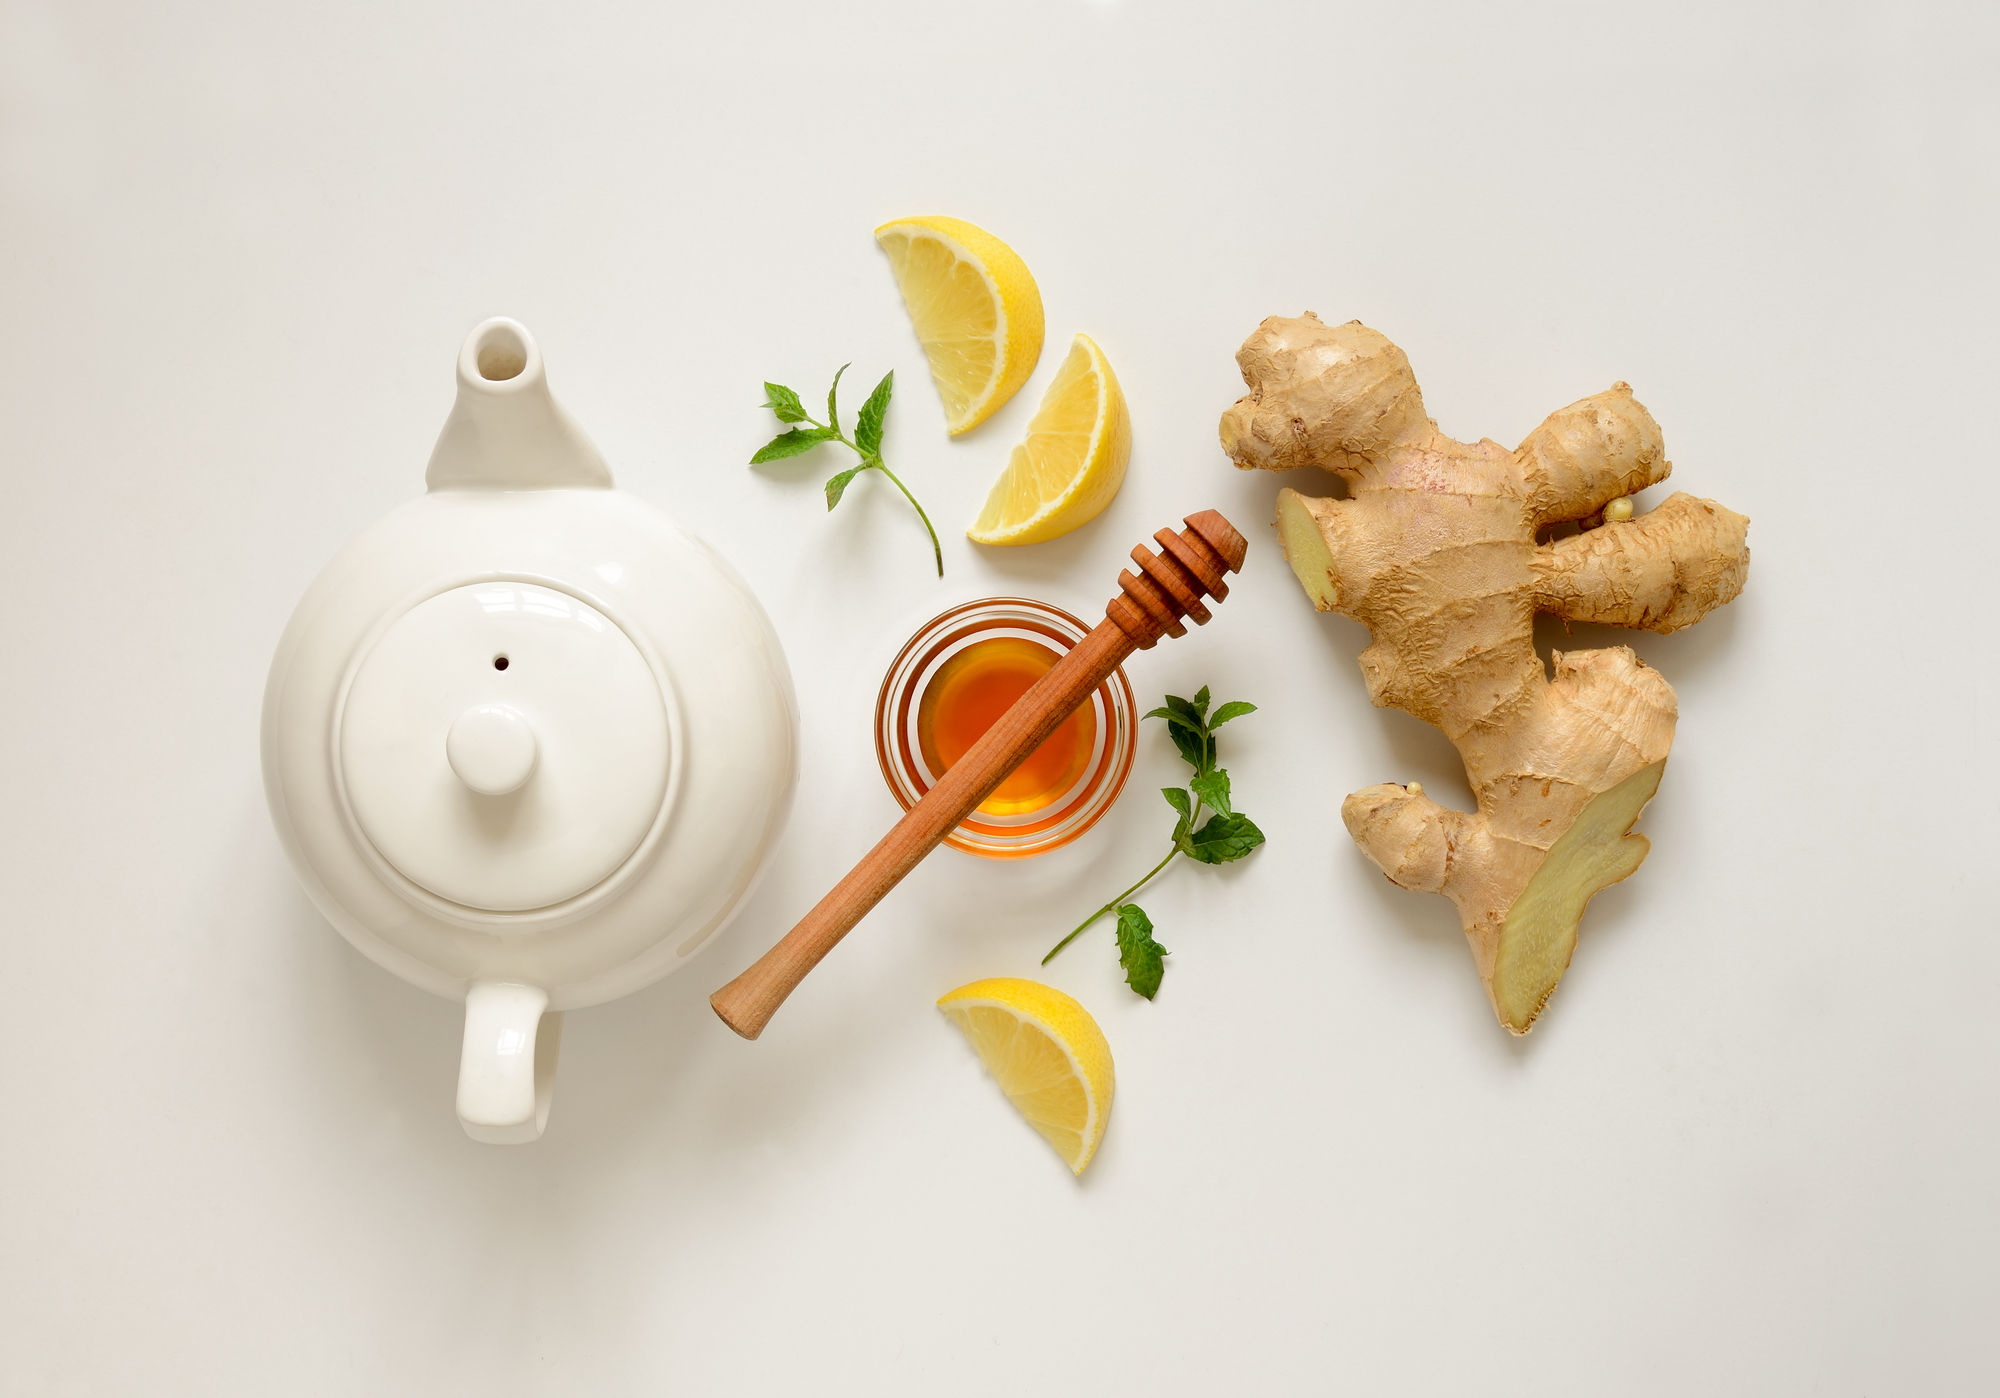 Ginger tea ingredients concept, healthy comforting and heating tea under simple recipe, view from above